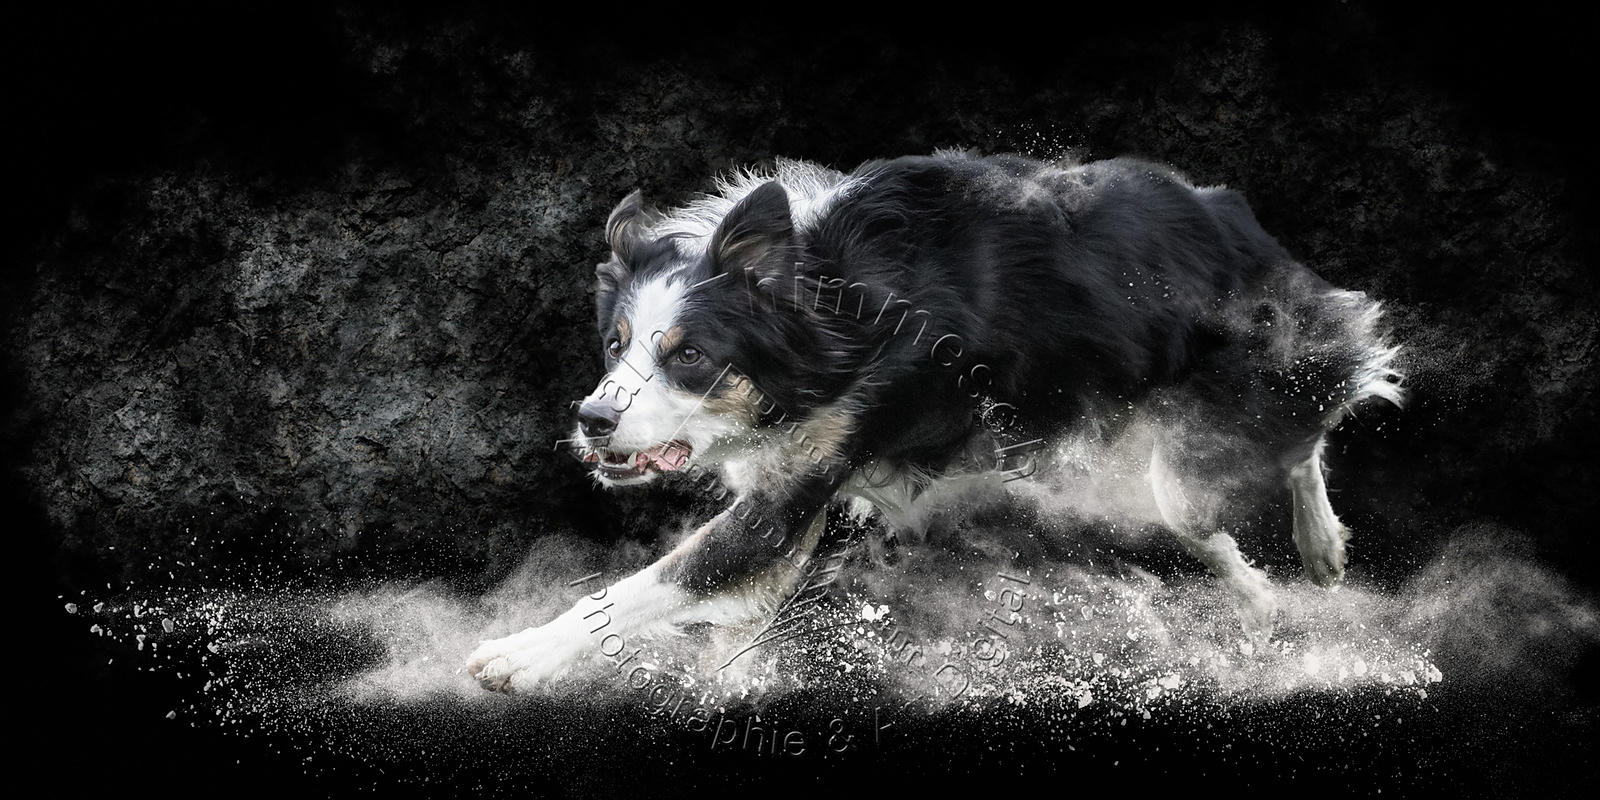 Art-Digital-Alain-Thimmesch-Chien-970